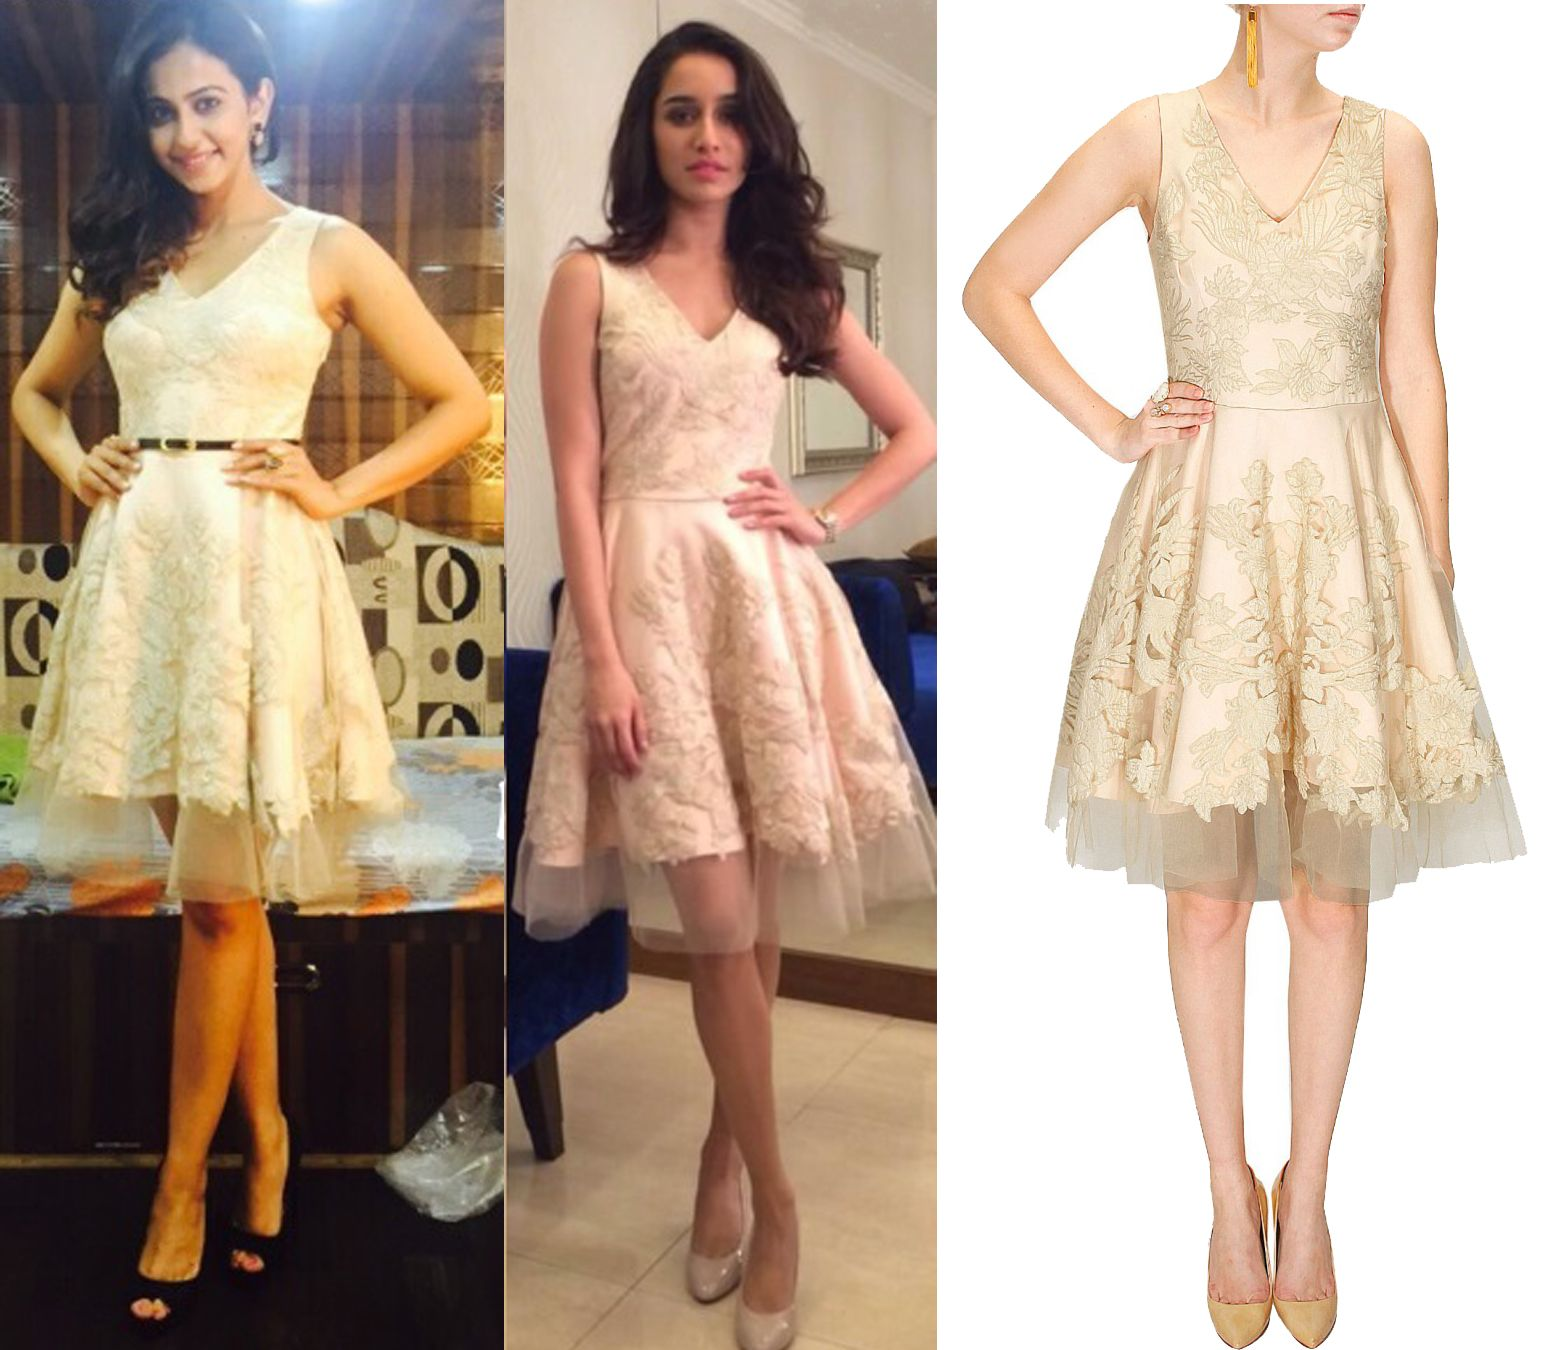 Who wore it better shraddha kapoor and rakul preet both look cute